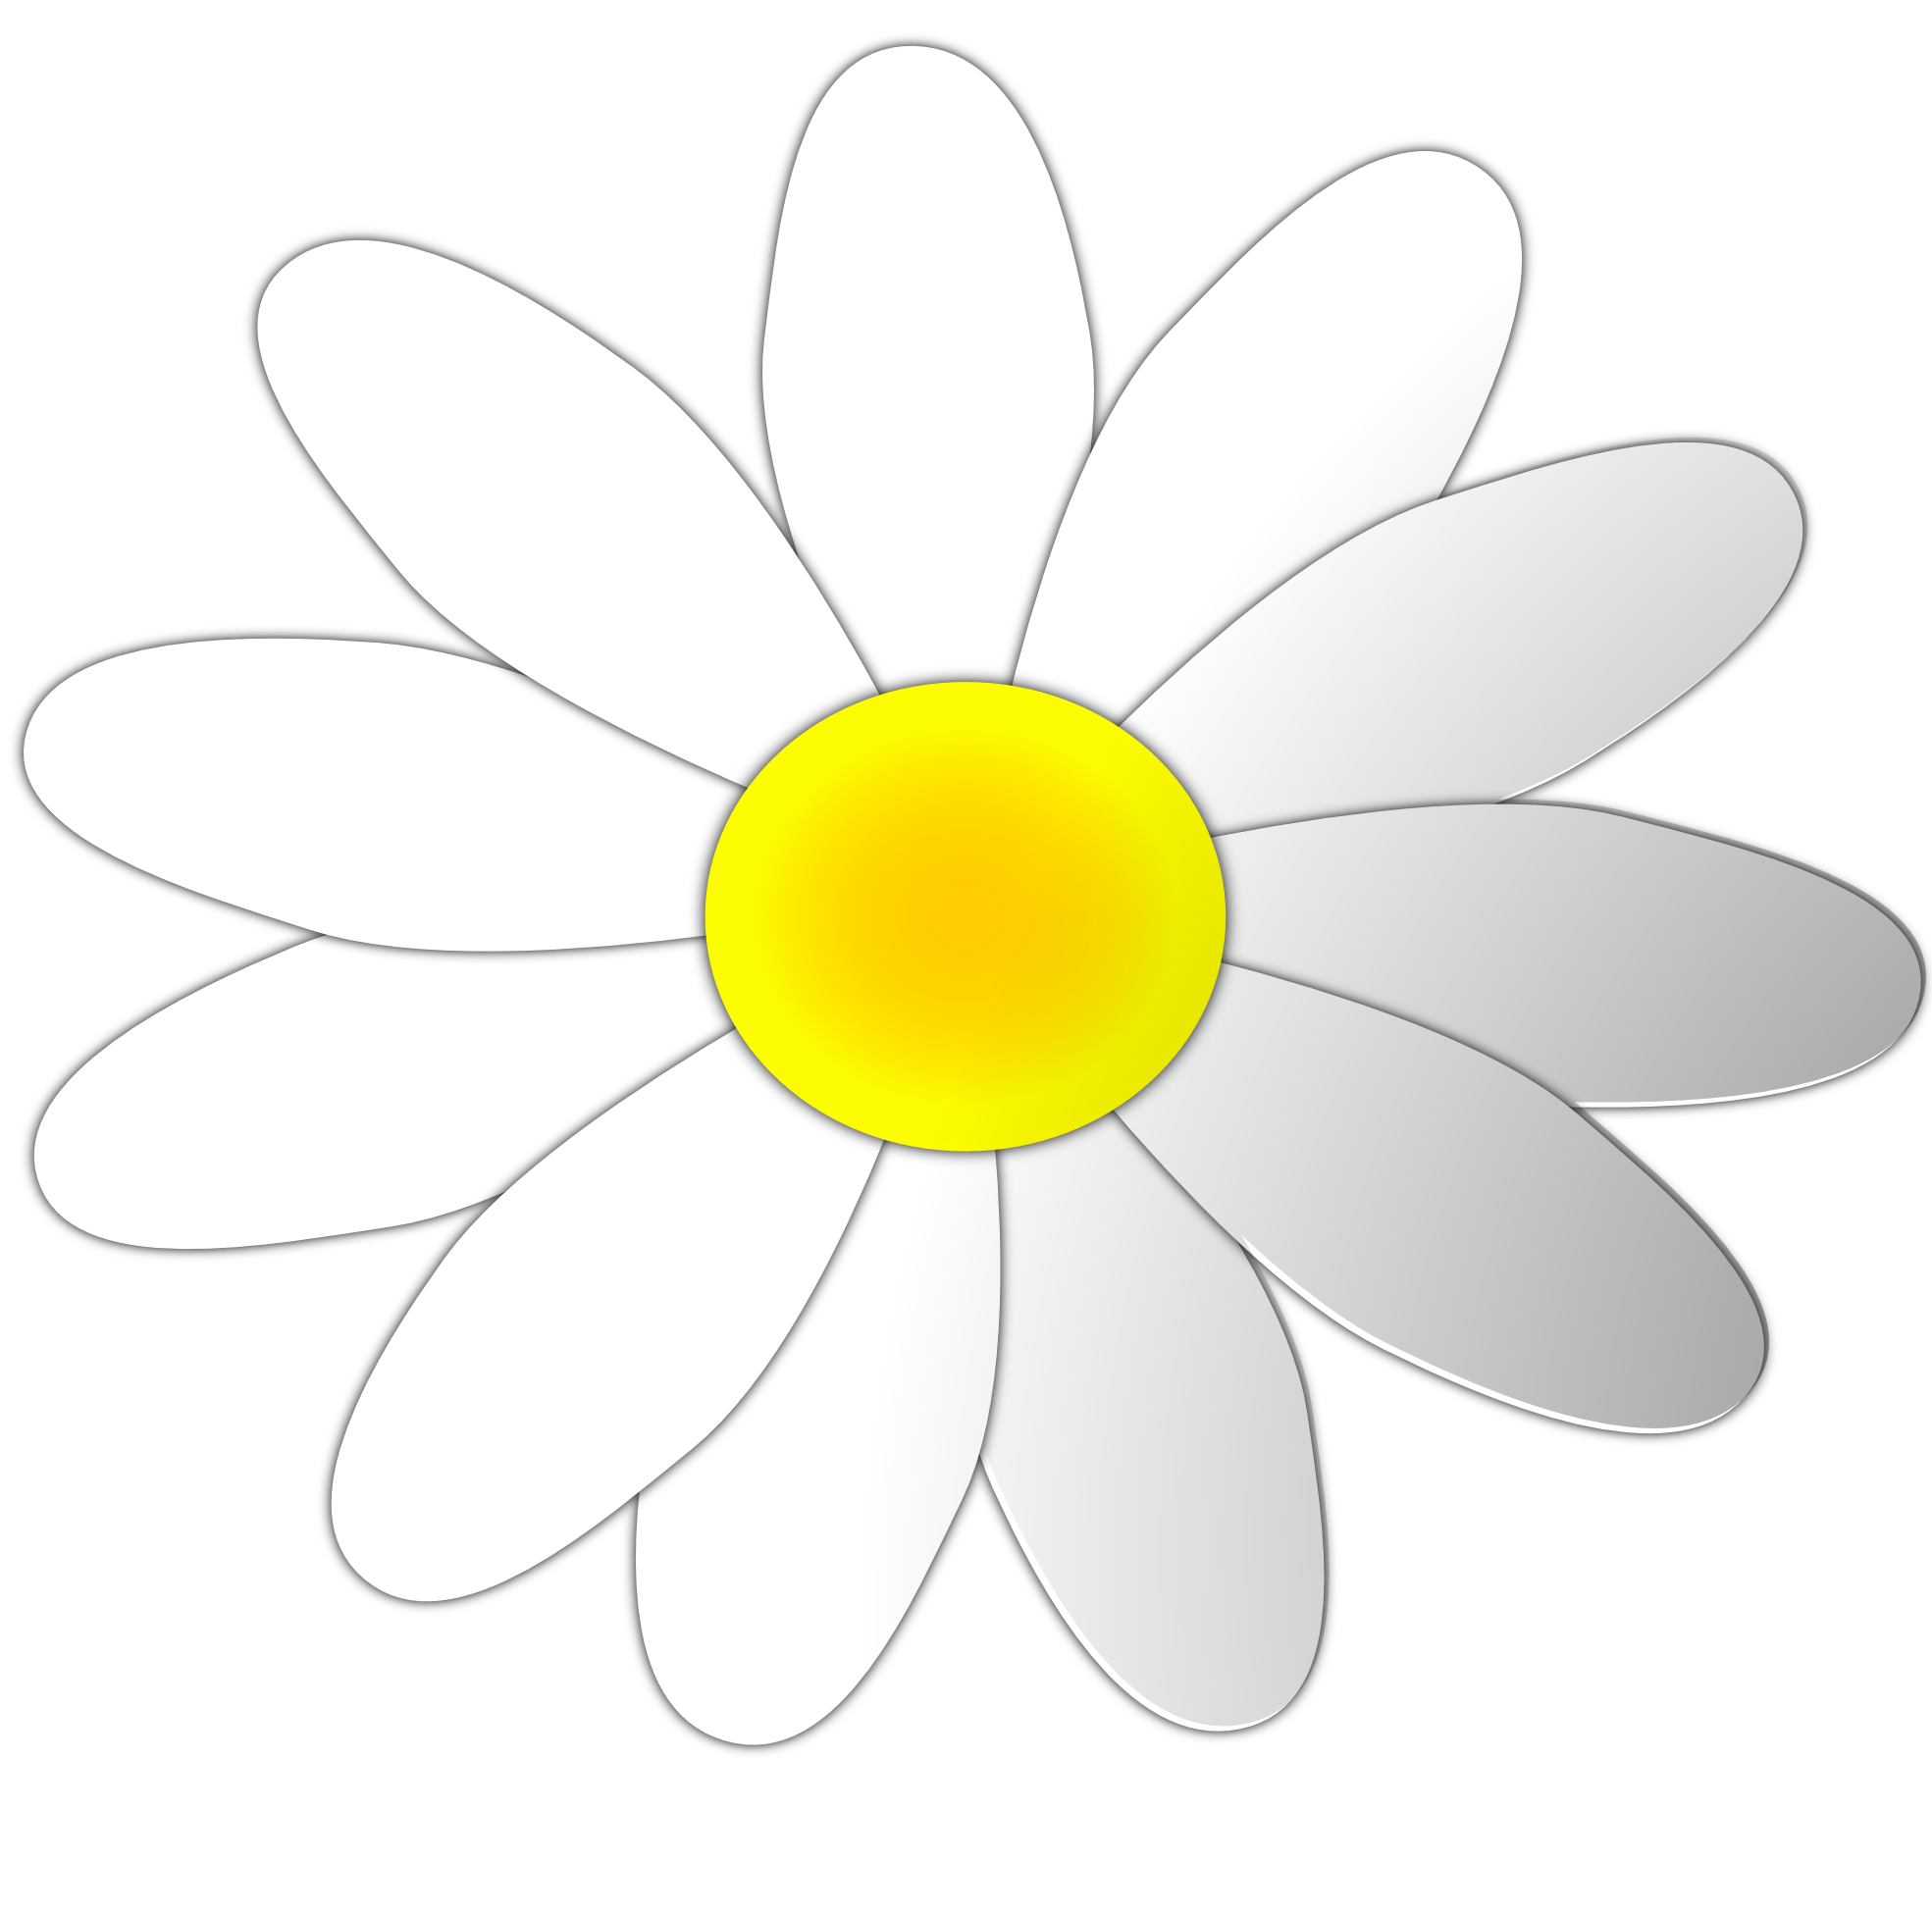 Cartoon Daisy Flower   Clipart Best